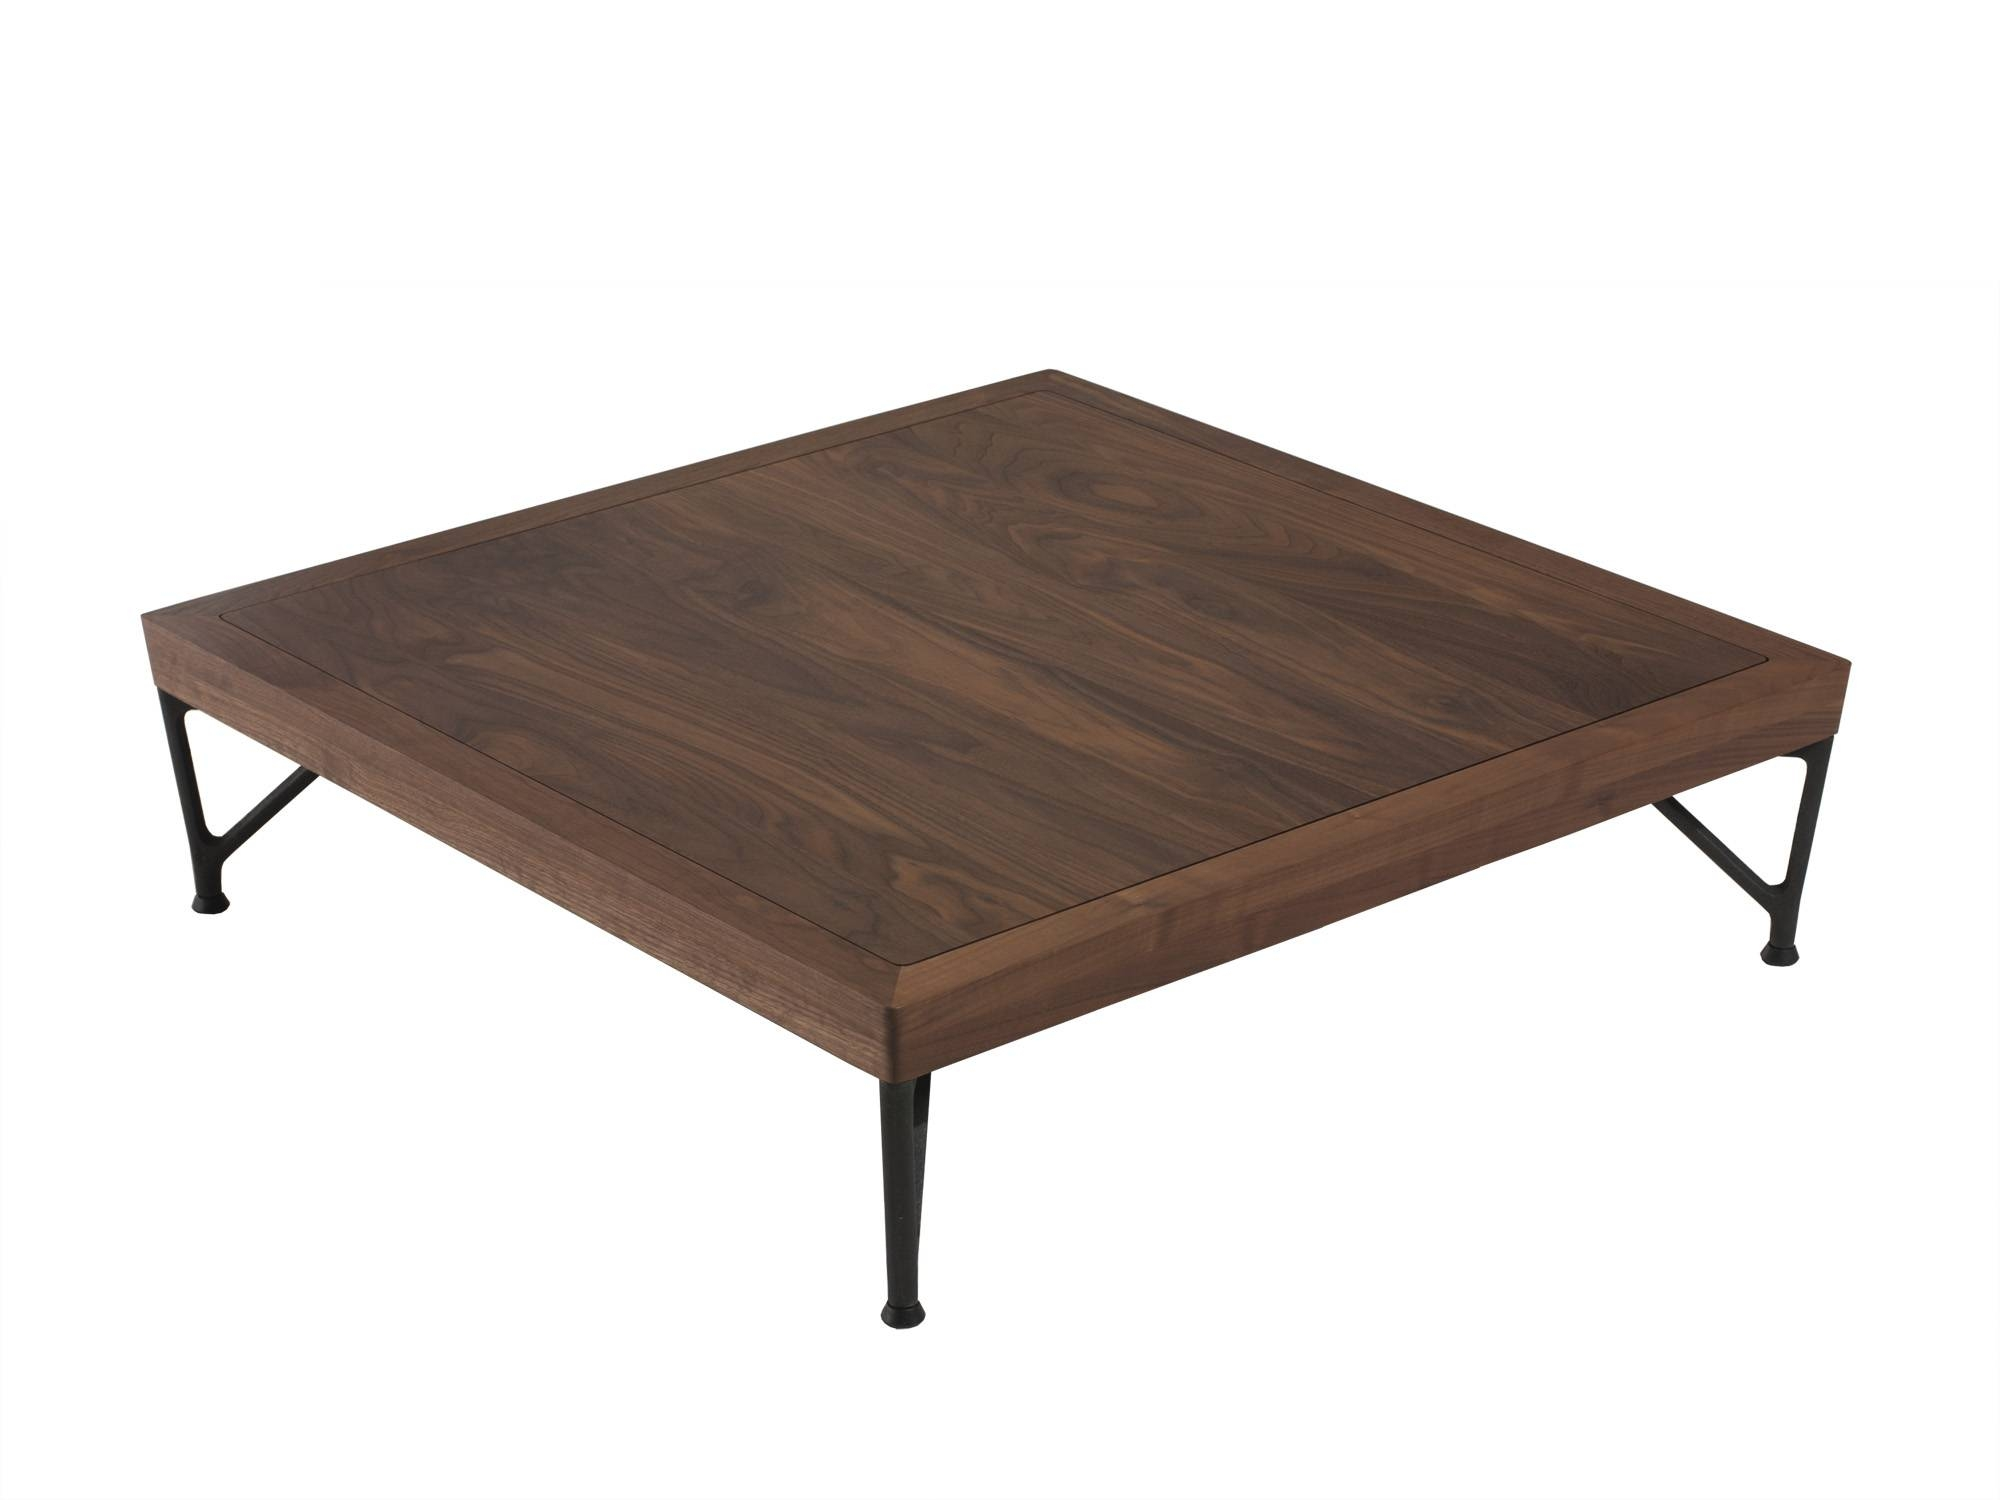 Large Square Glass Top Coffee Table - Jericho Mafjar Project within Large Square Wood Coffee Tables (Image 21 of 30)